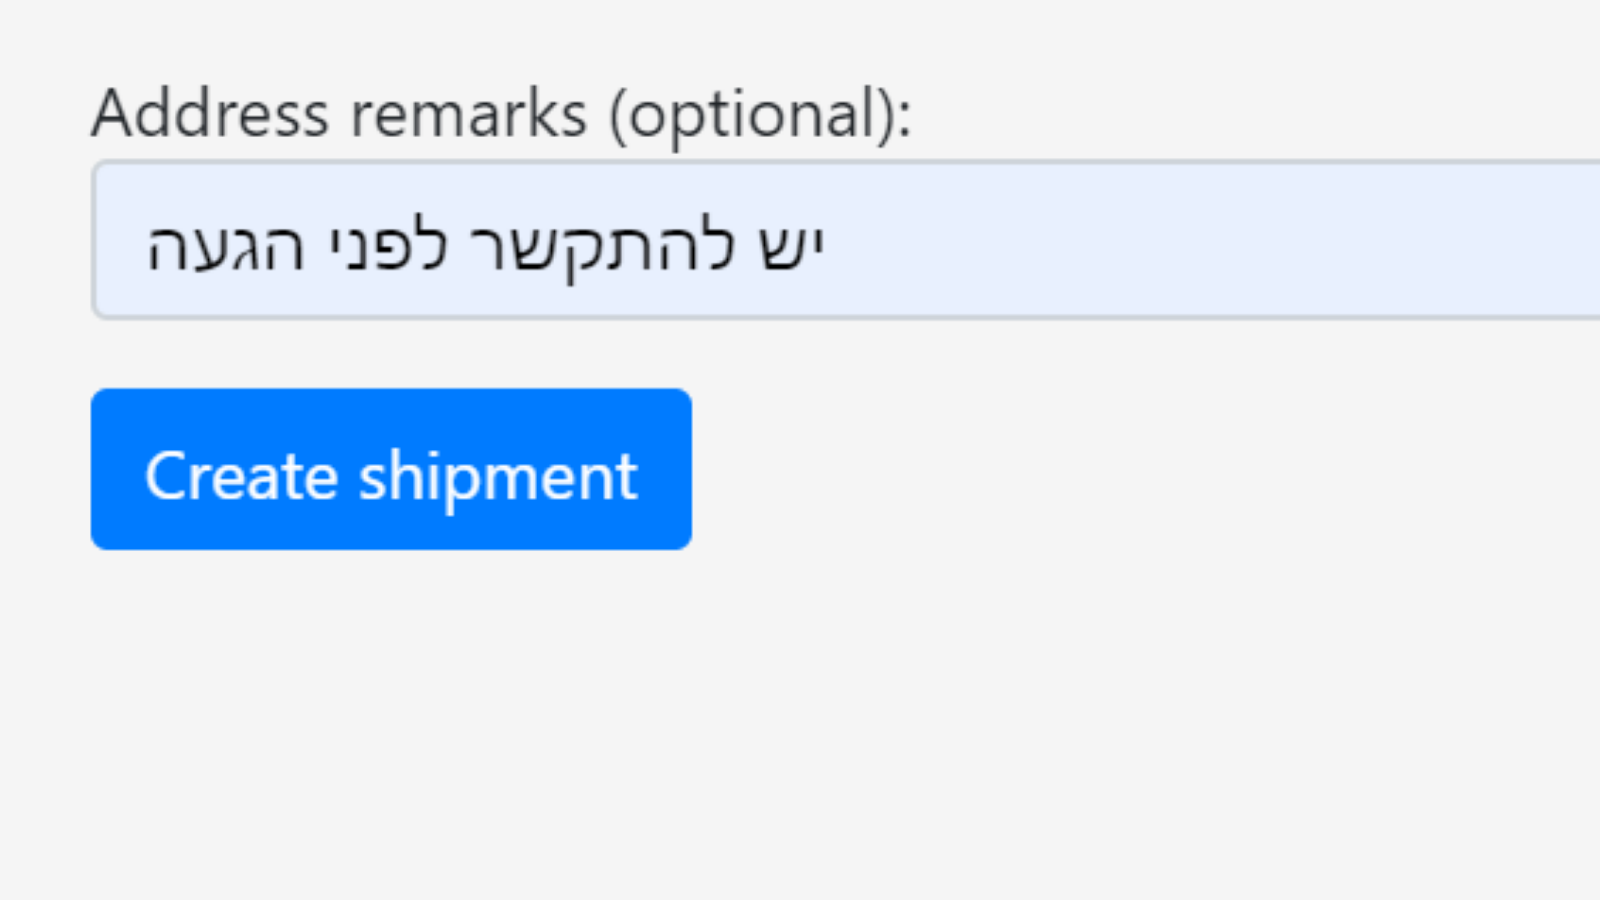 Add remarks for shipments